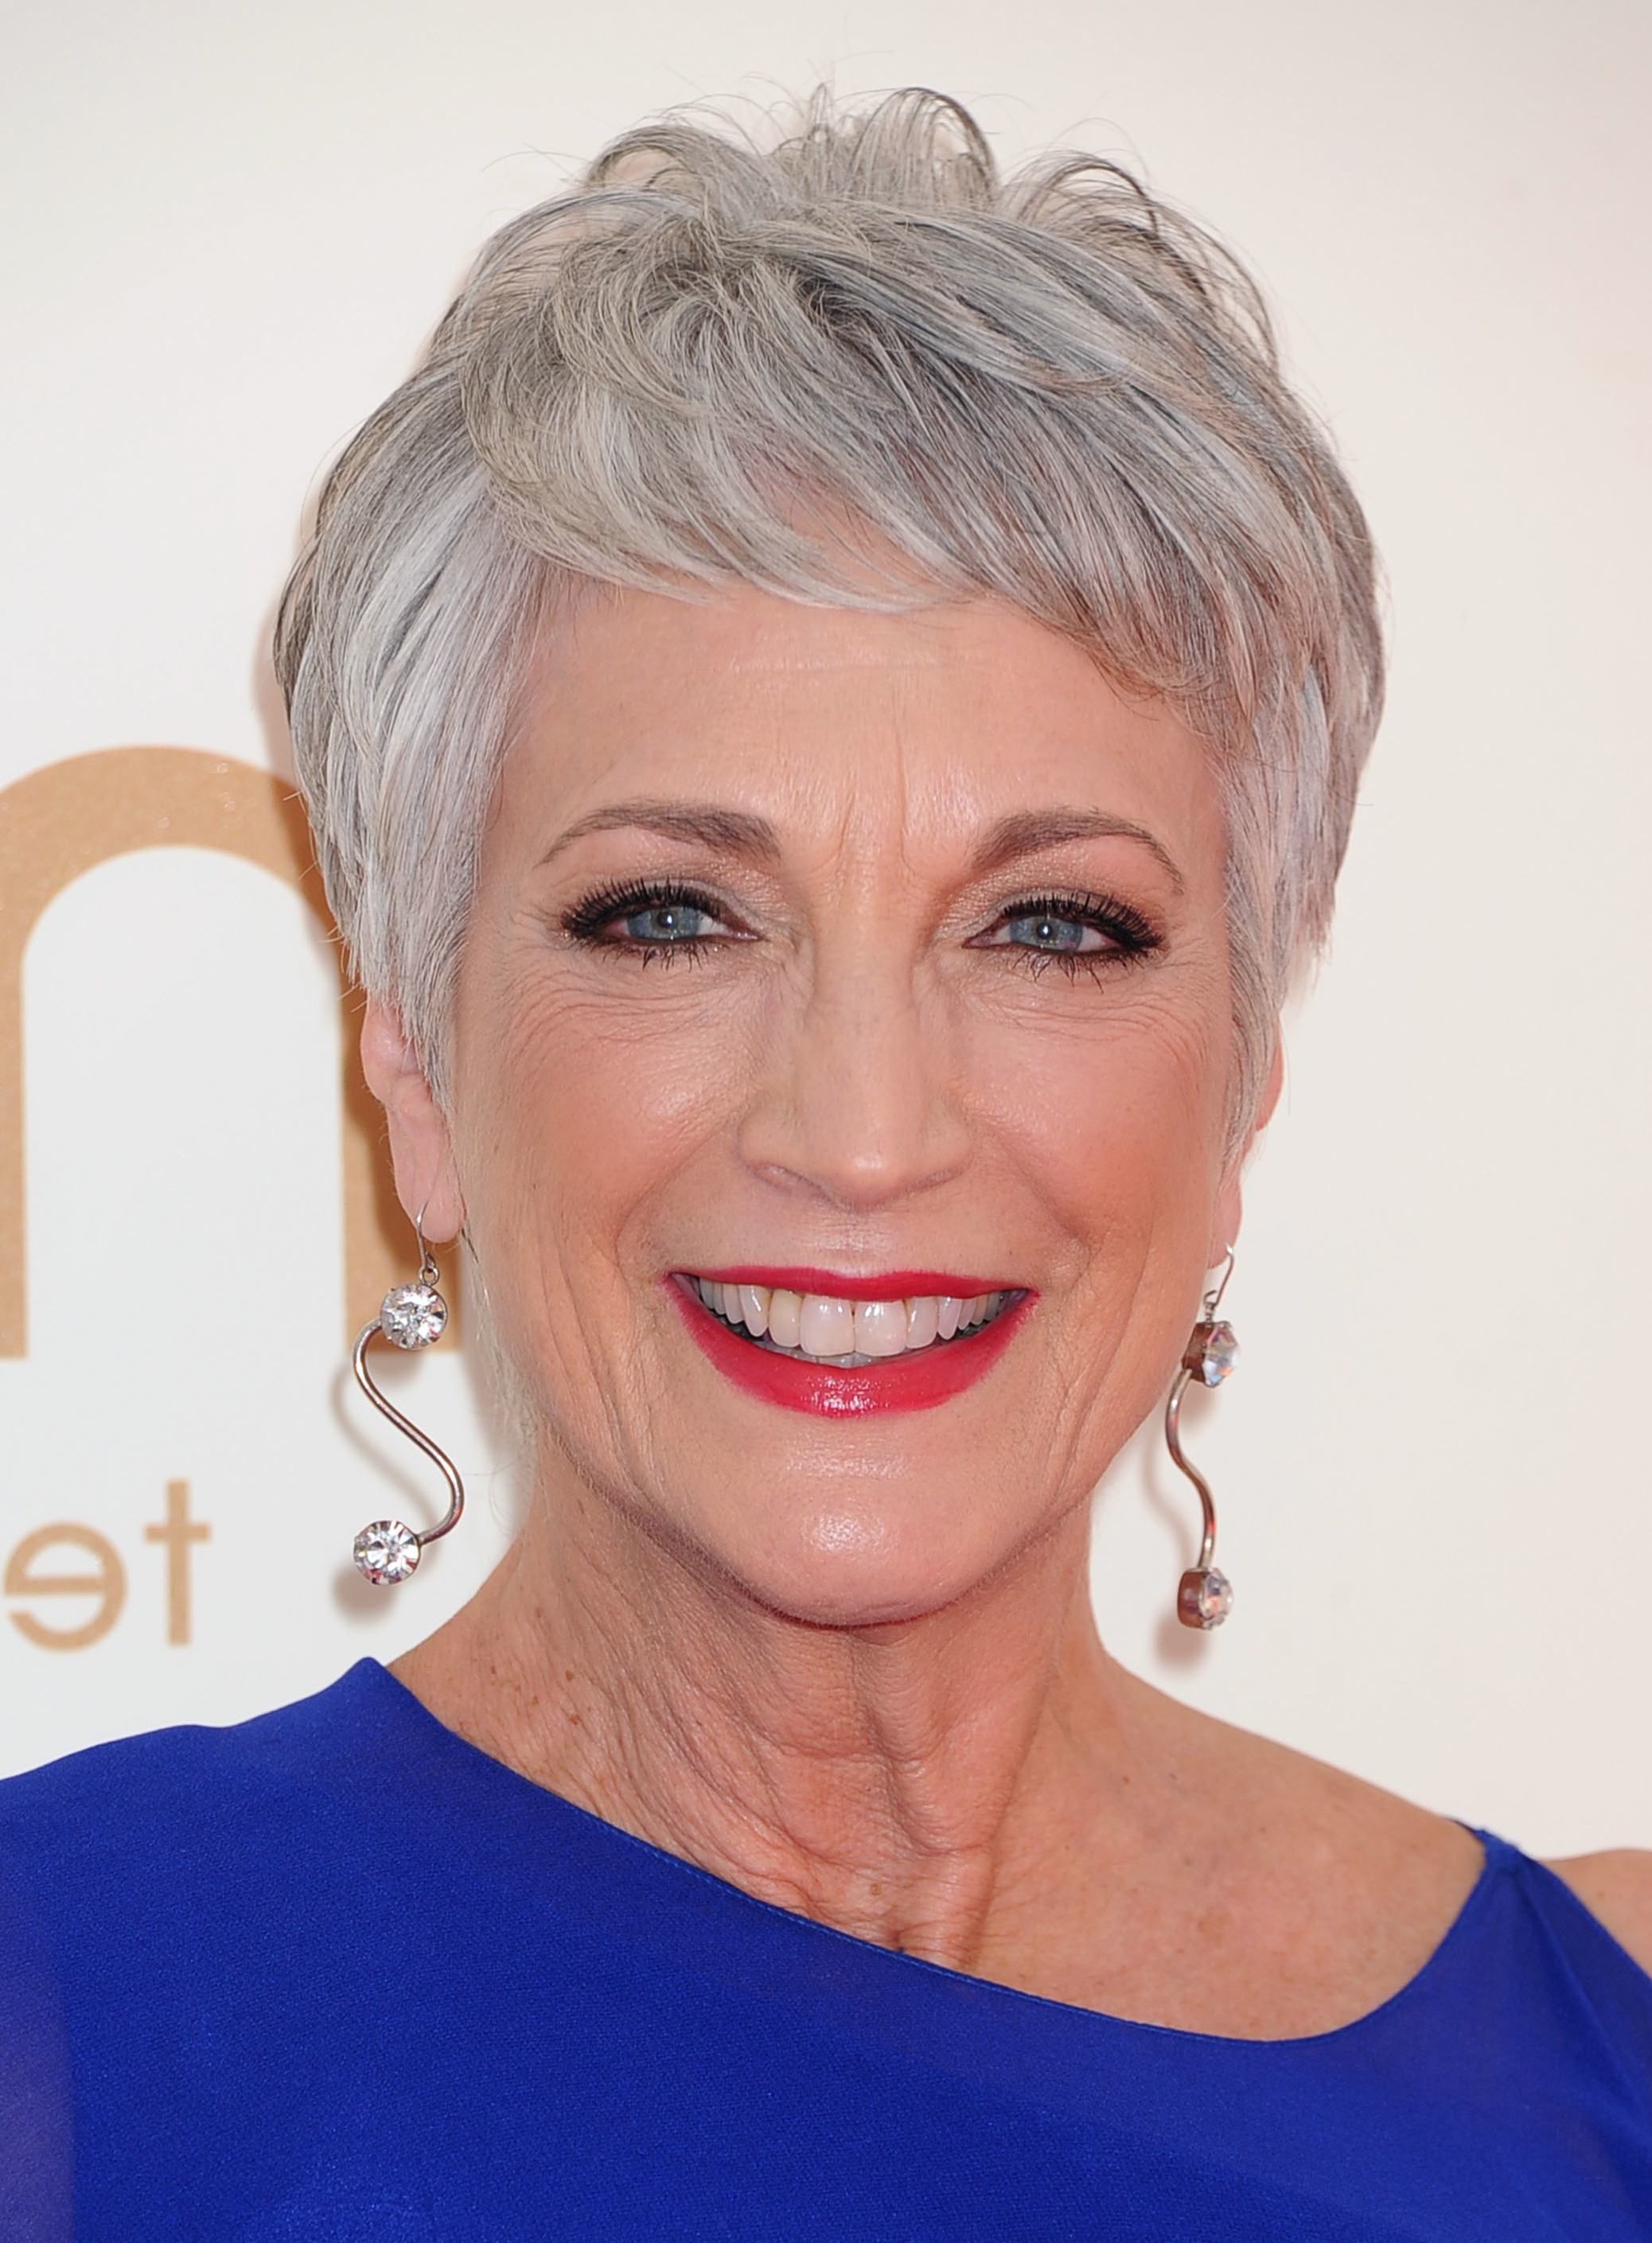 29 Reasons You Should Fall In Love With Hairstyles For 29 Year Old Within Short Haircuts With Gray Hair (View 24 of 25)